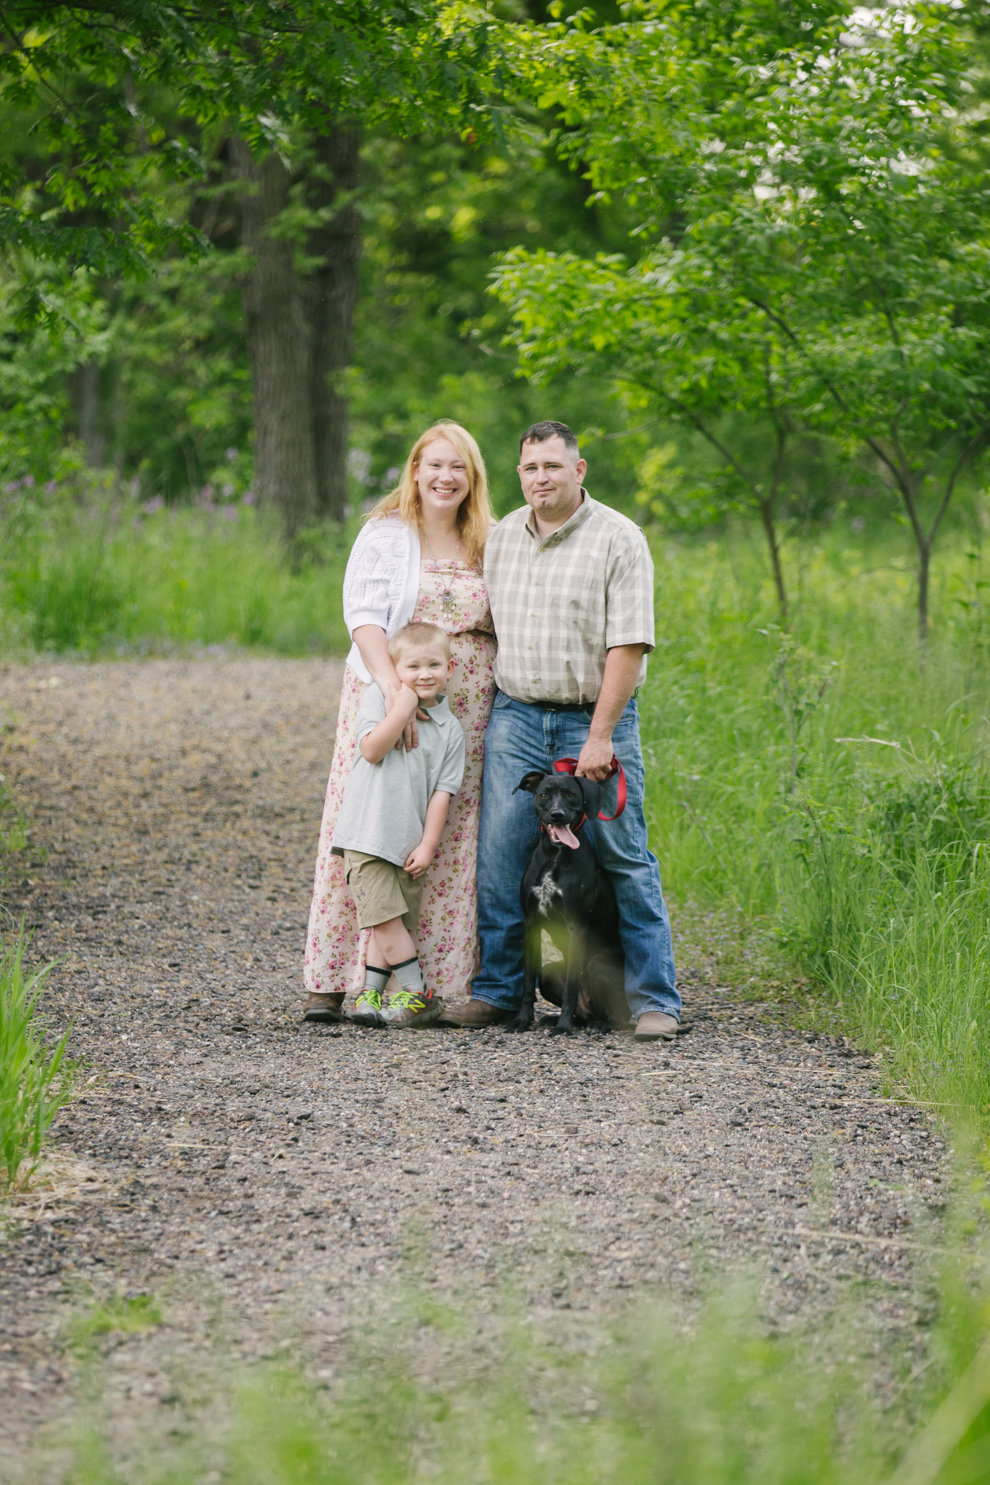 052216_Ryan_Nicole_Engagement_001